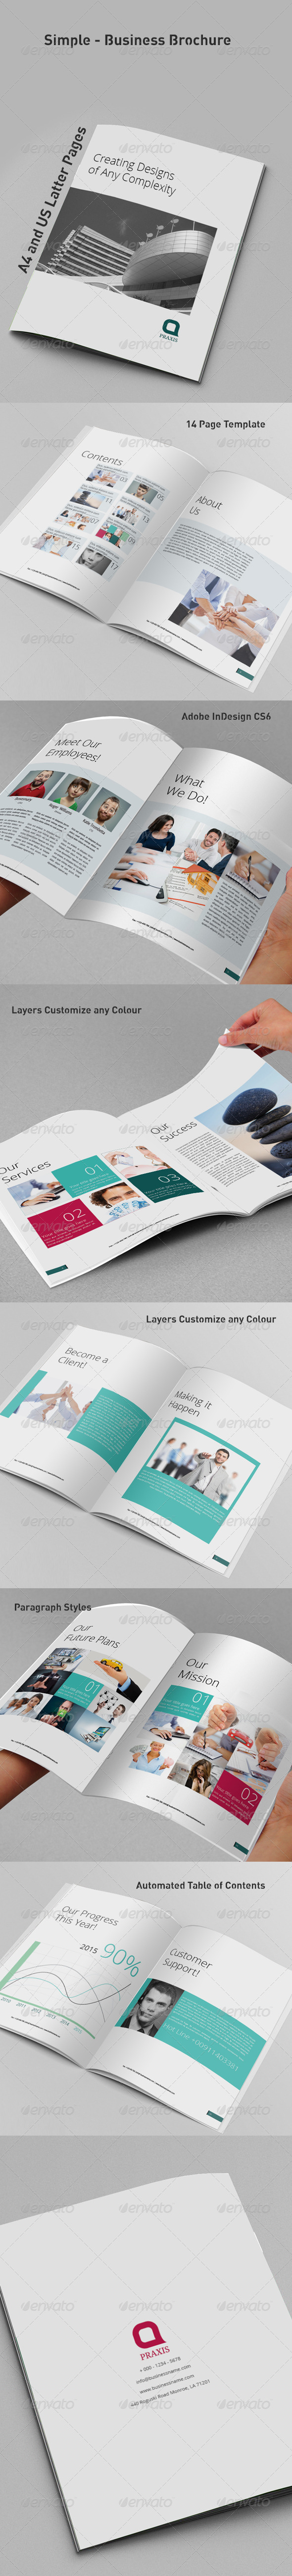 GraphicRiver Simple Business Brochure 8337534